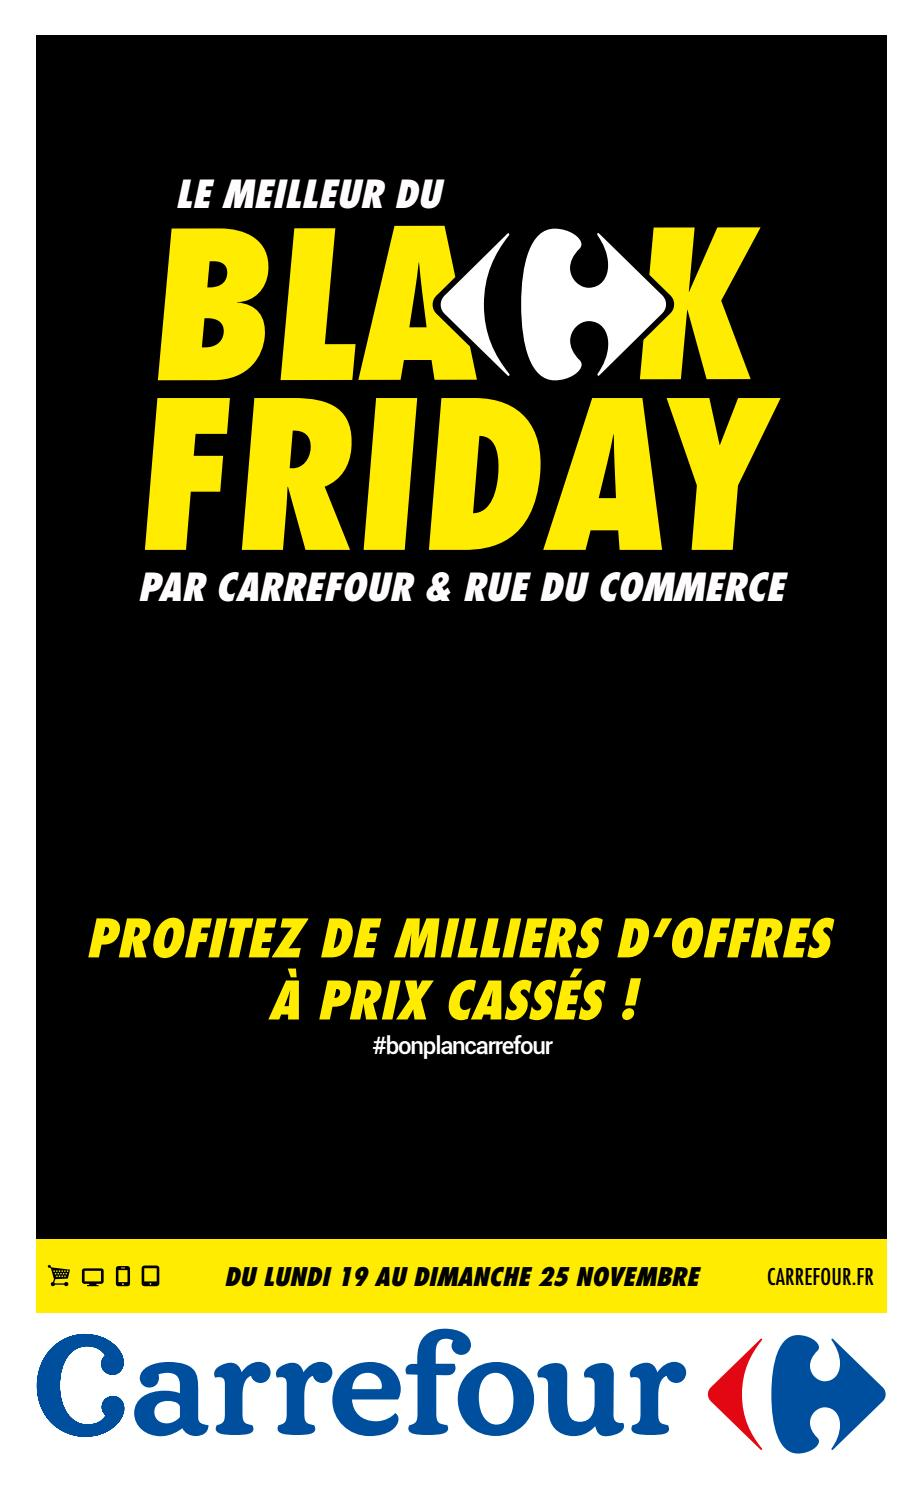 Httpcalendrier Carrefourdrivecom.Catalogue Carrefour Black Friday By Monsieurechantillons Fr